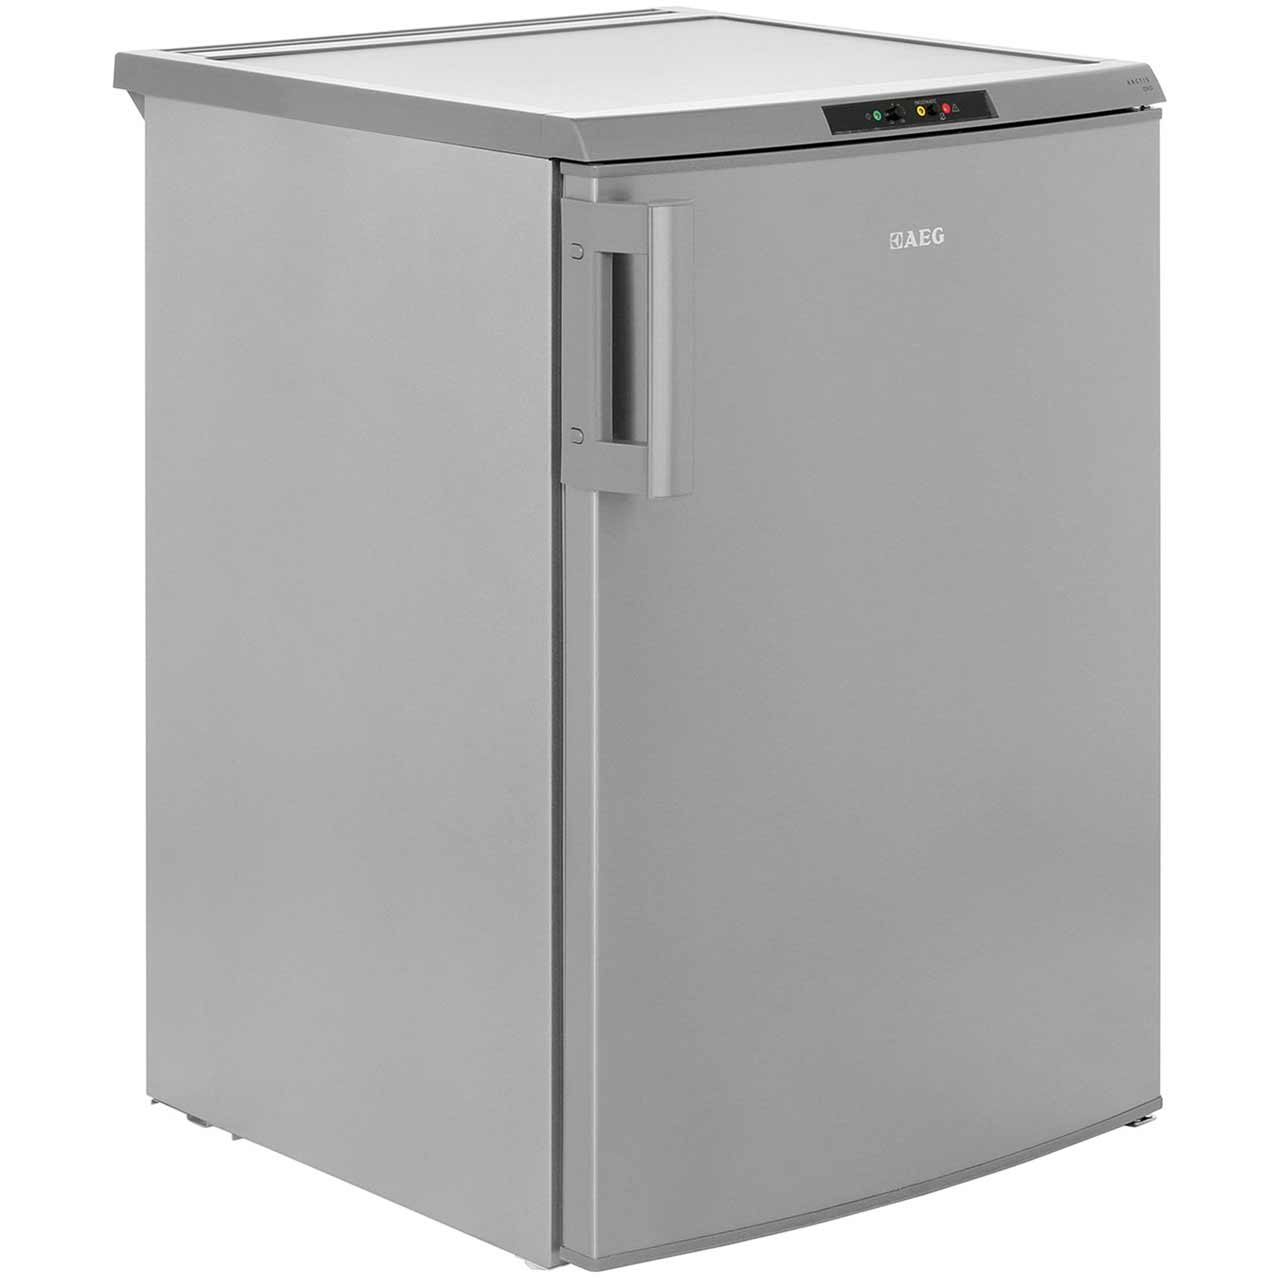 AEG A71101TSX0 92L 85x60cm Under Counter Freestanding Freezer - Silver With Antifingerprint Stainless Steel Door